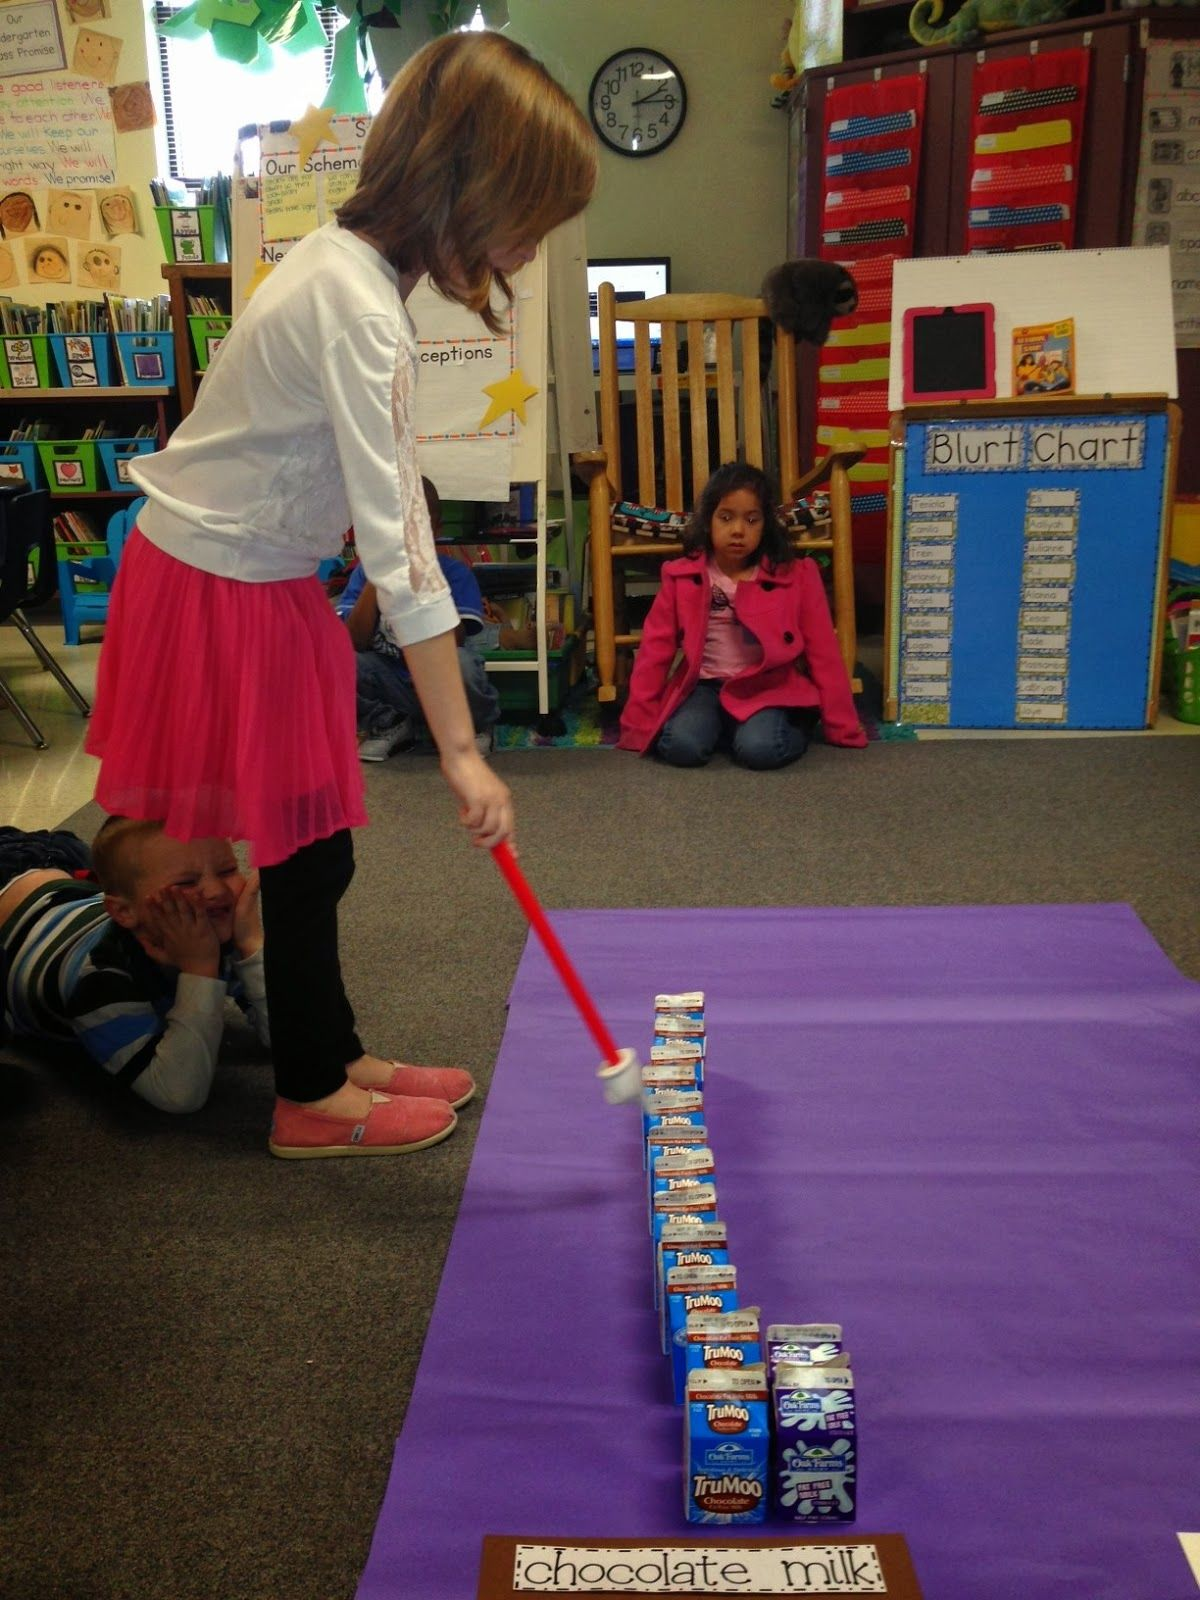 K 8 B A Kindergarten B Create Real Object Graphs C With Collected Data On Milk Preferences